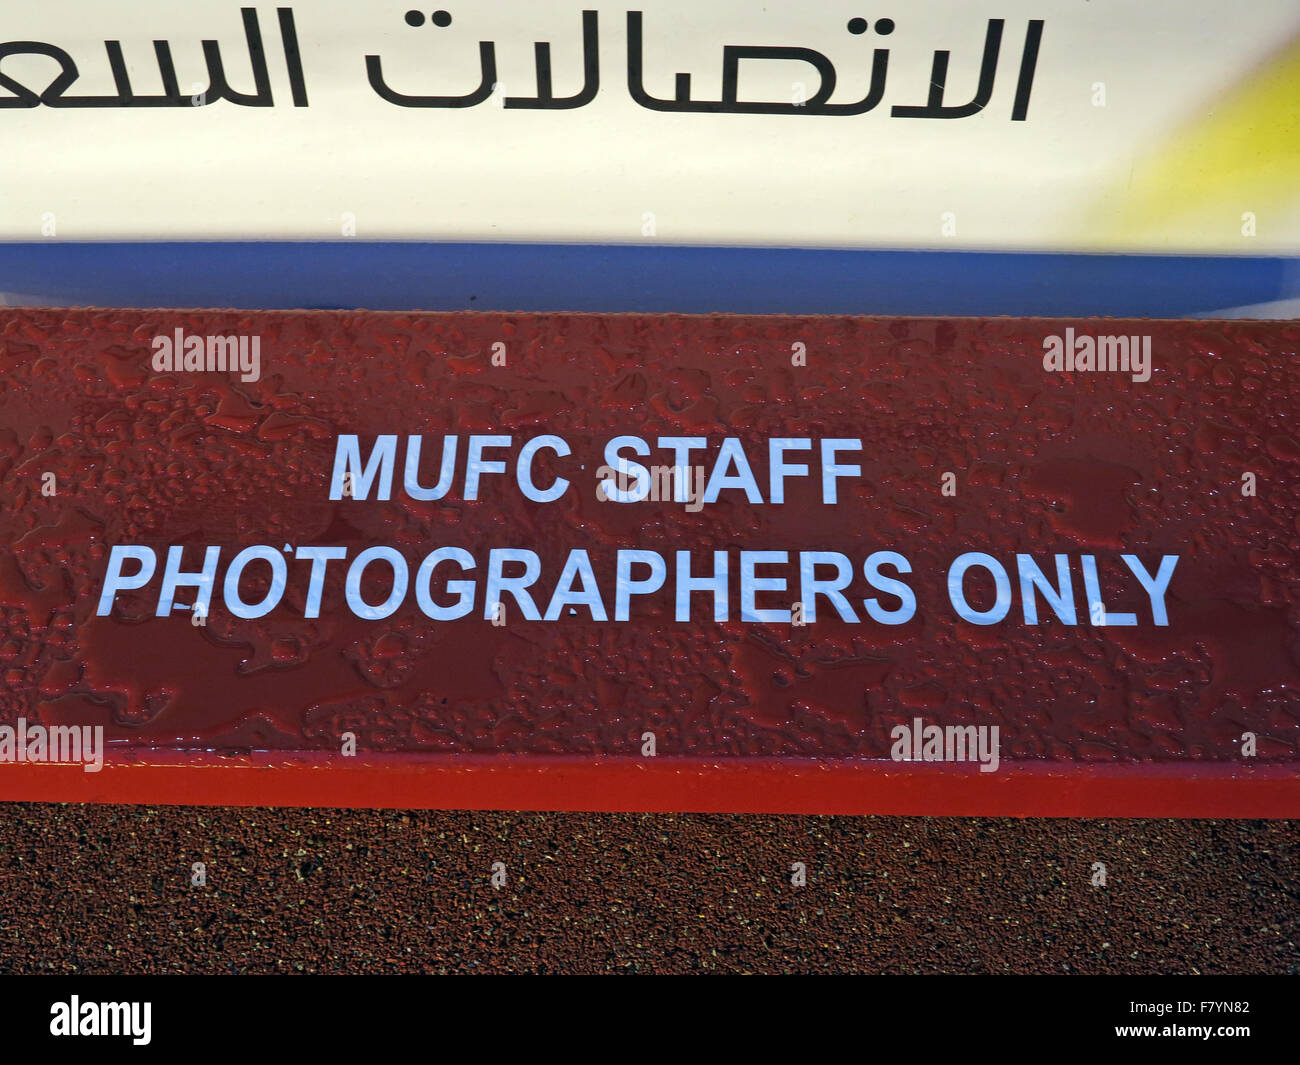 MUFC Staff Photographers Only bench at MUFC, Old Trafford,Manchester,England,UK - Stock Image